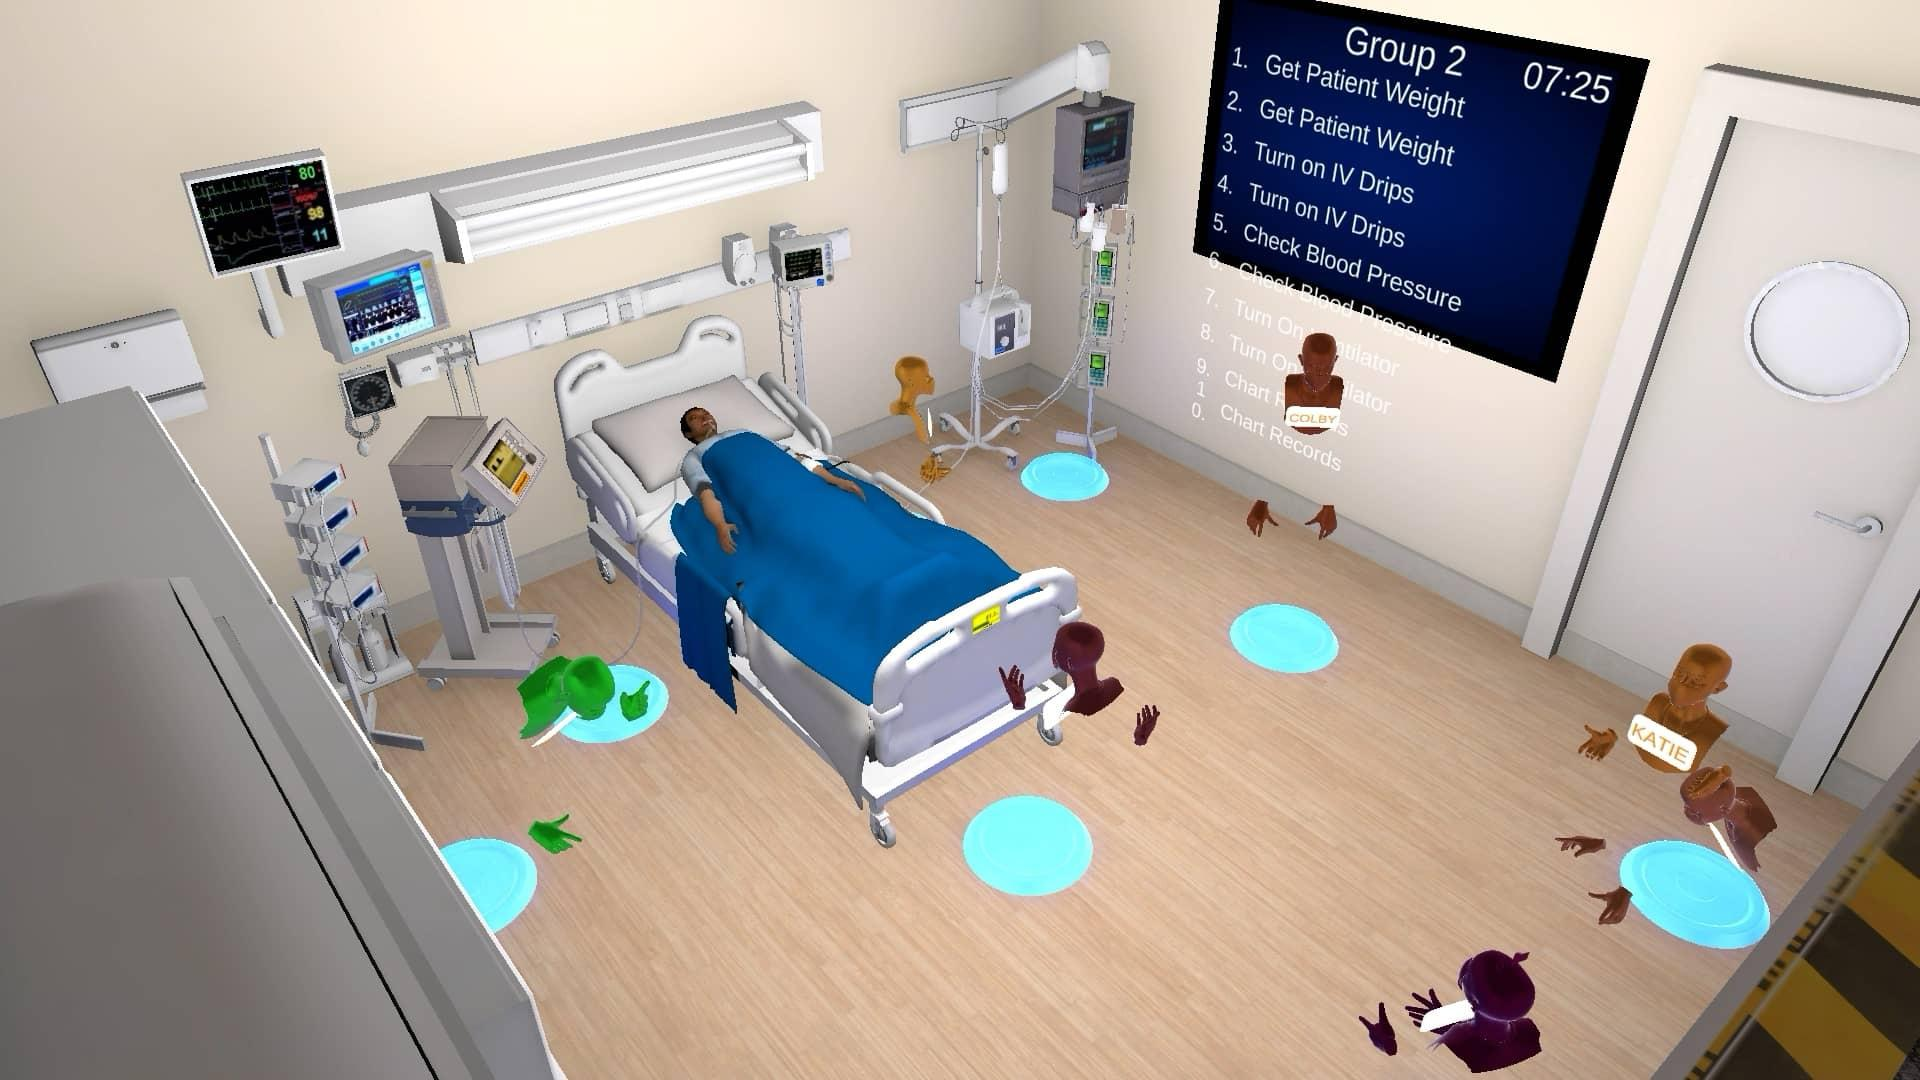 """A simulated virtual ICU room in a hospital with a patient in a bed surrounded by various equipment and several avatars of students circled around the bed. A large billboard on the wall lists tasks like """"Get patient weight"""" """"Turn on IV Drips"""" """"Check Blood Pressure""""."""